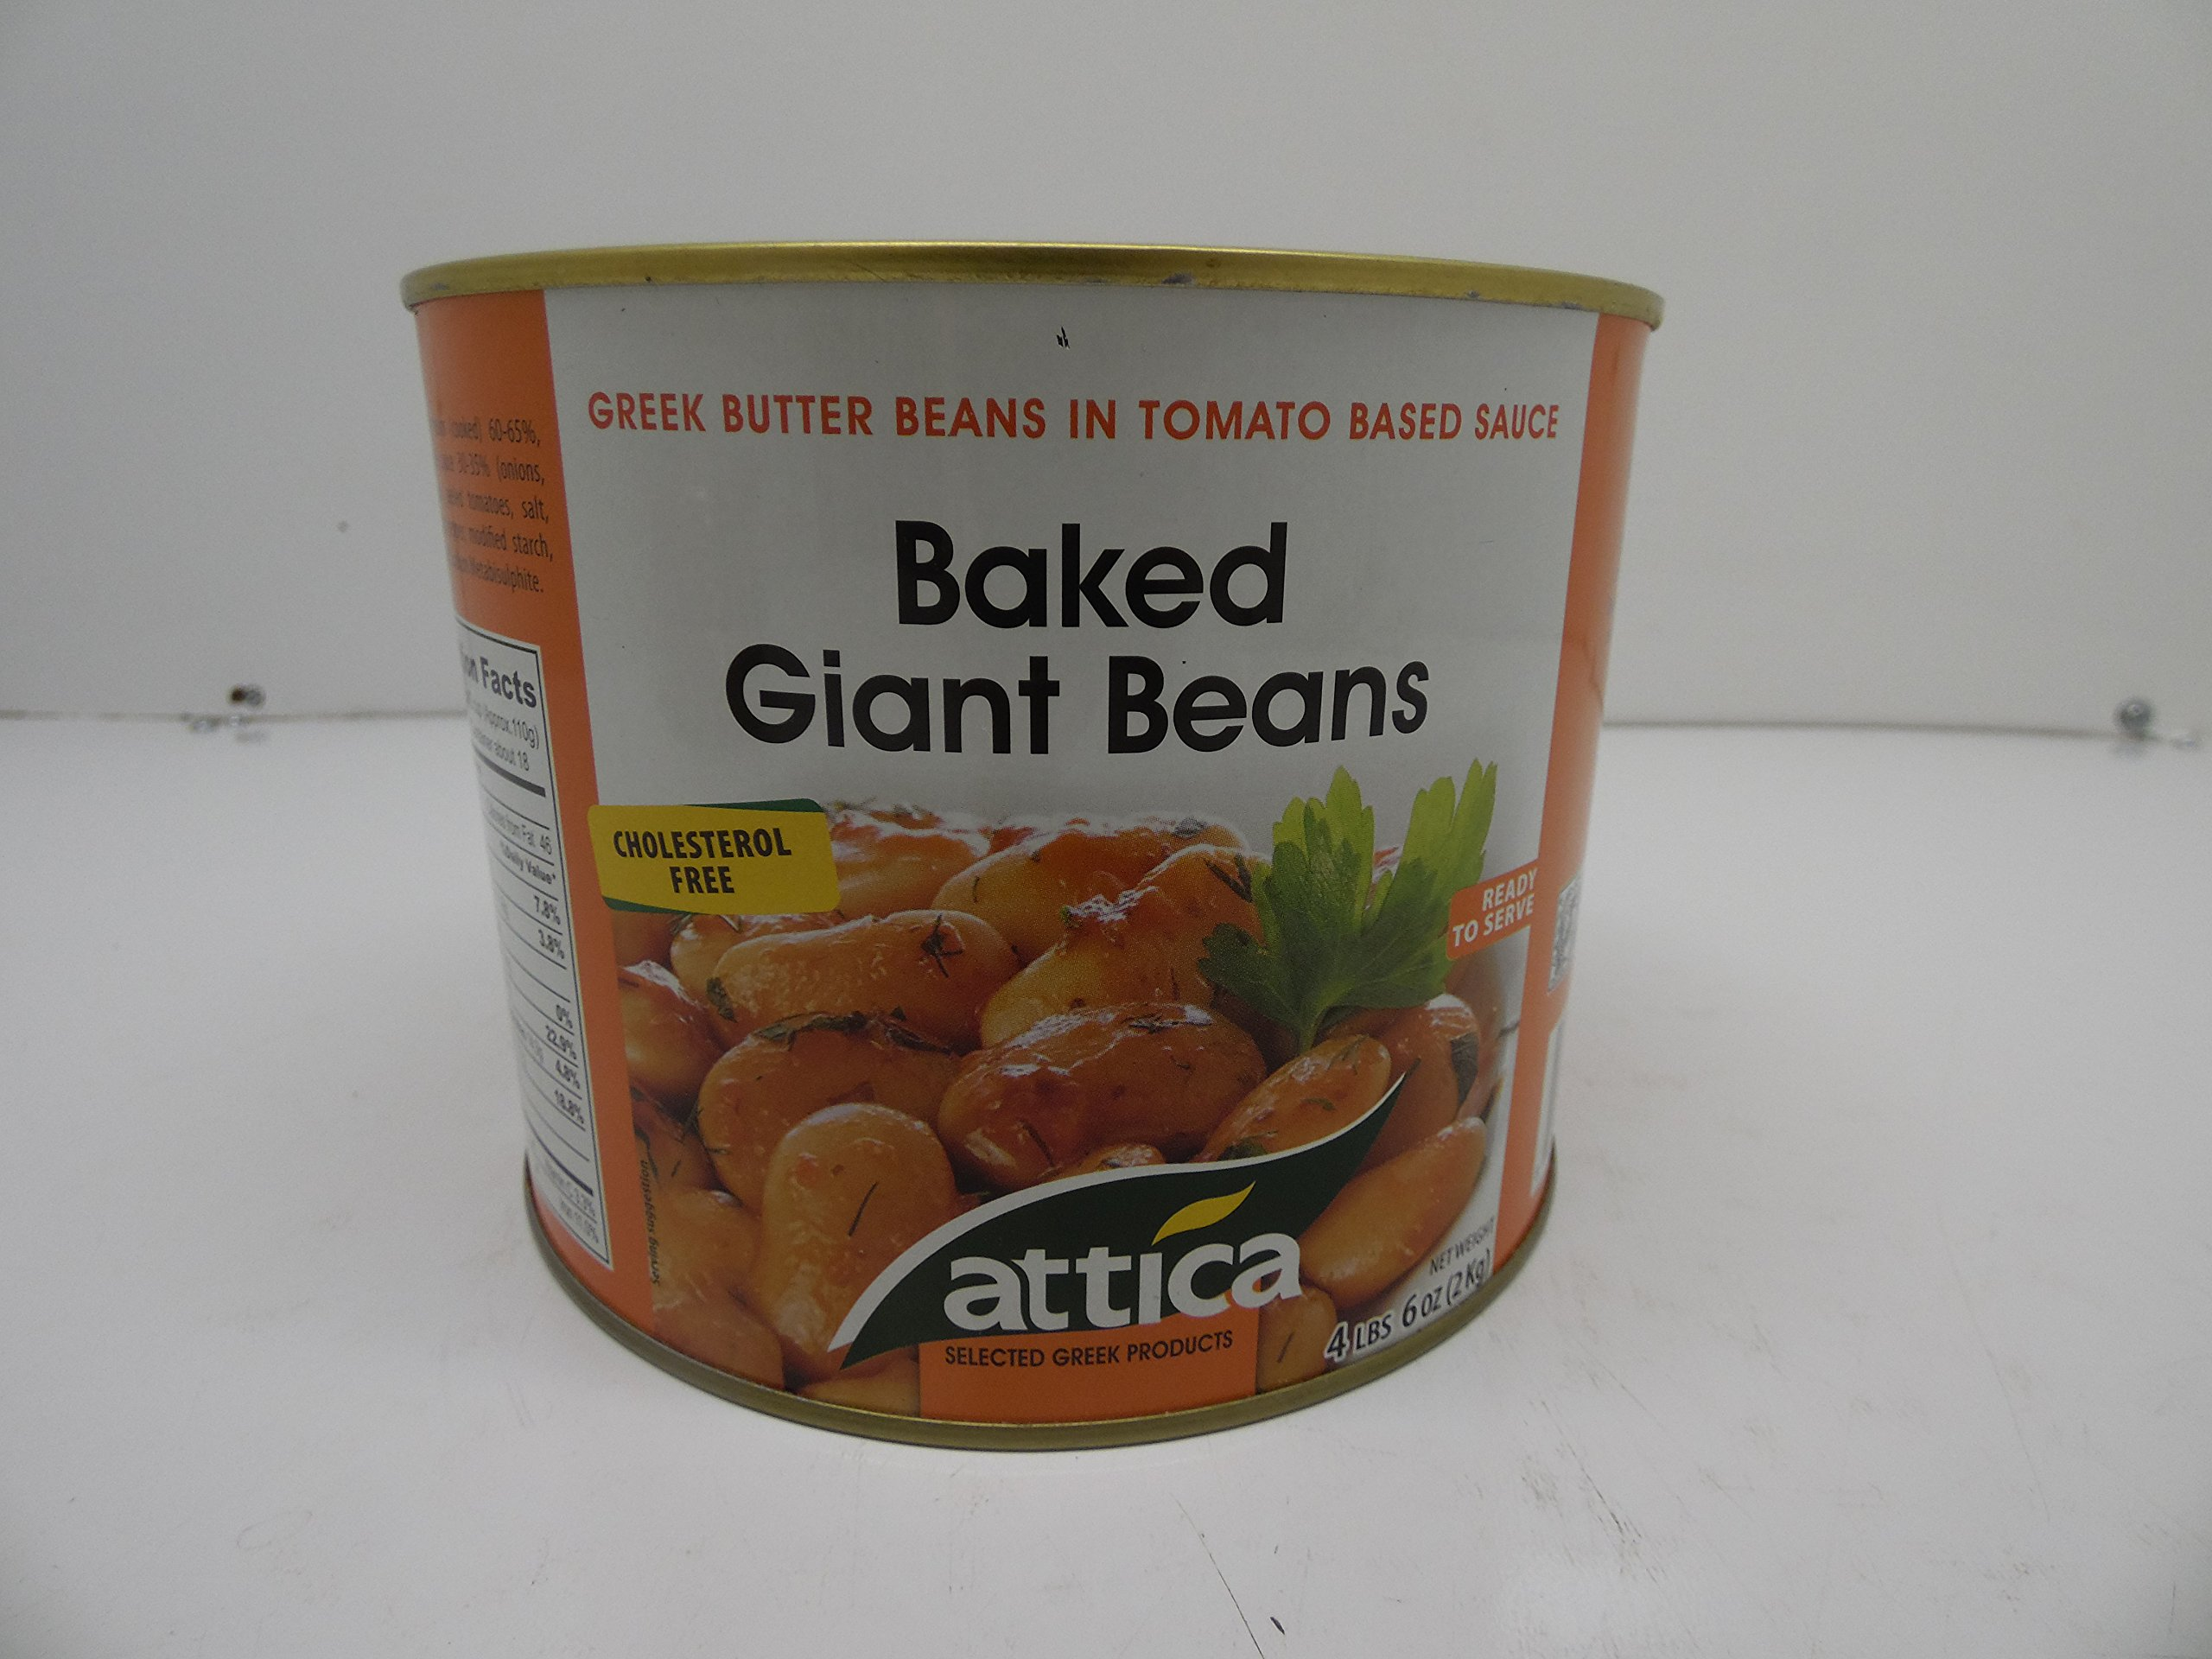 Attica Greek Butter Beans in Tomato Based Sauce,Baked Giant Beans, 4 lbs 6 oz